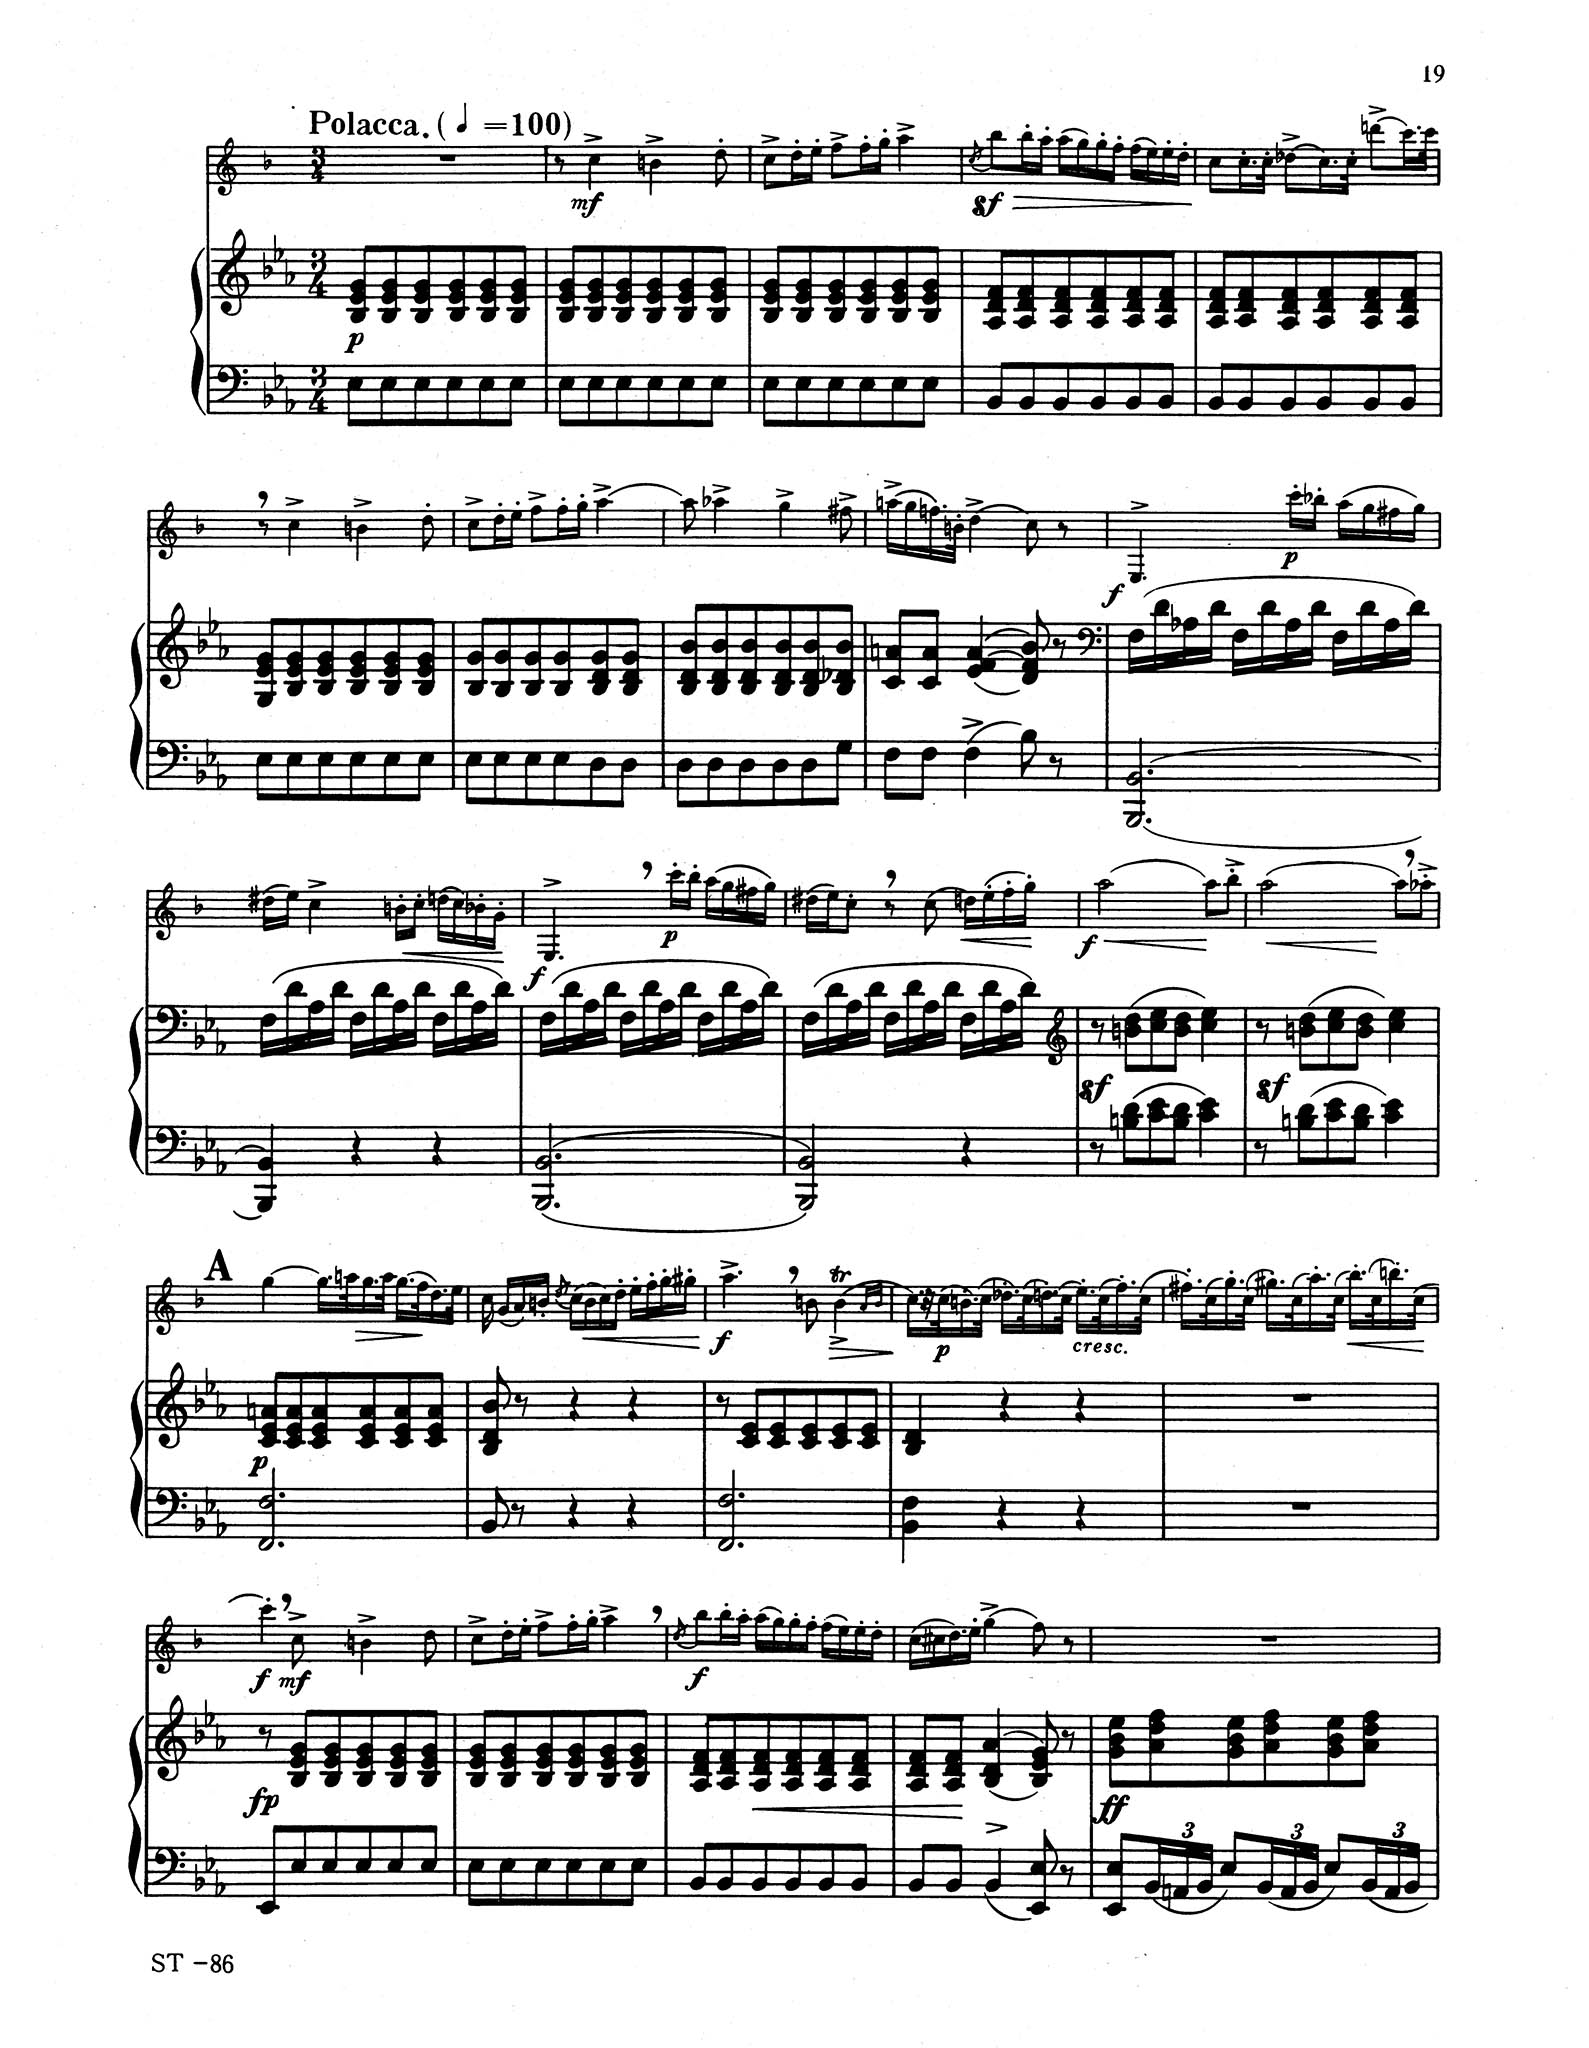 Clarinet Concerto No. 2 in E-flat Major, Op. 74 - Movement 3